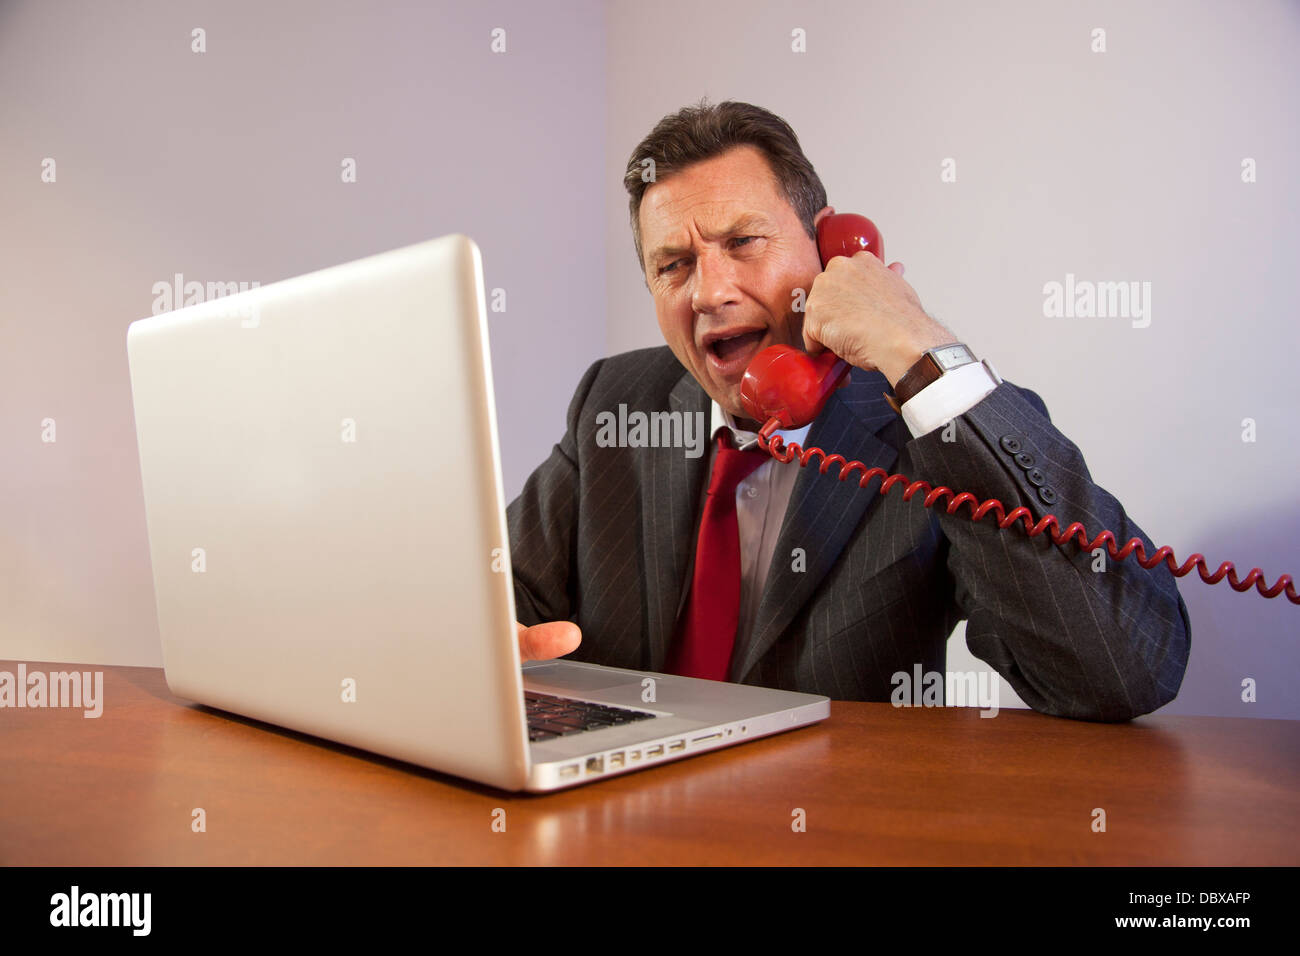 Angry man wearing a suit, shouting down a red telephone while sitting in front of a laptop on a desk. Stock Photo